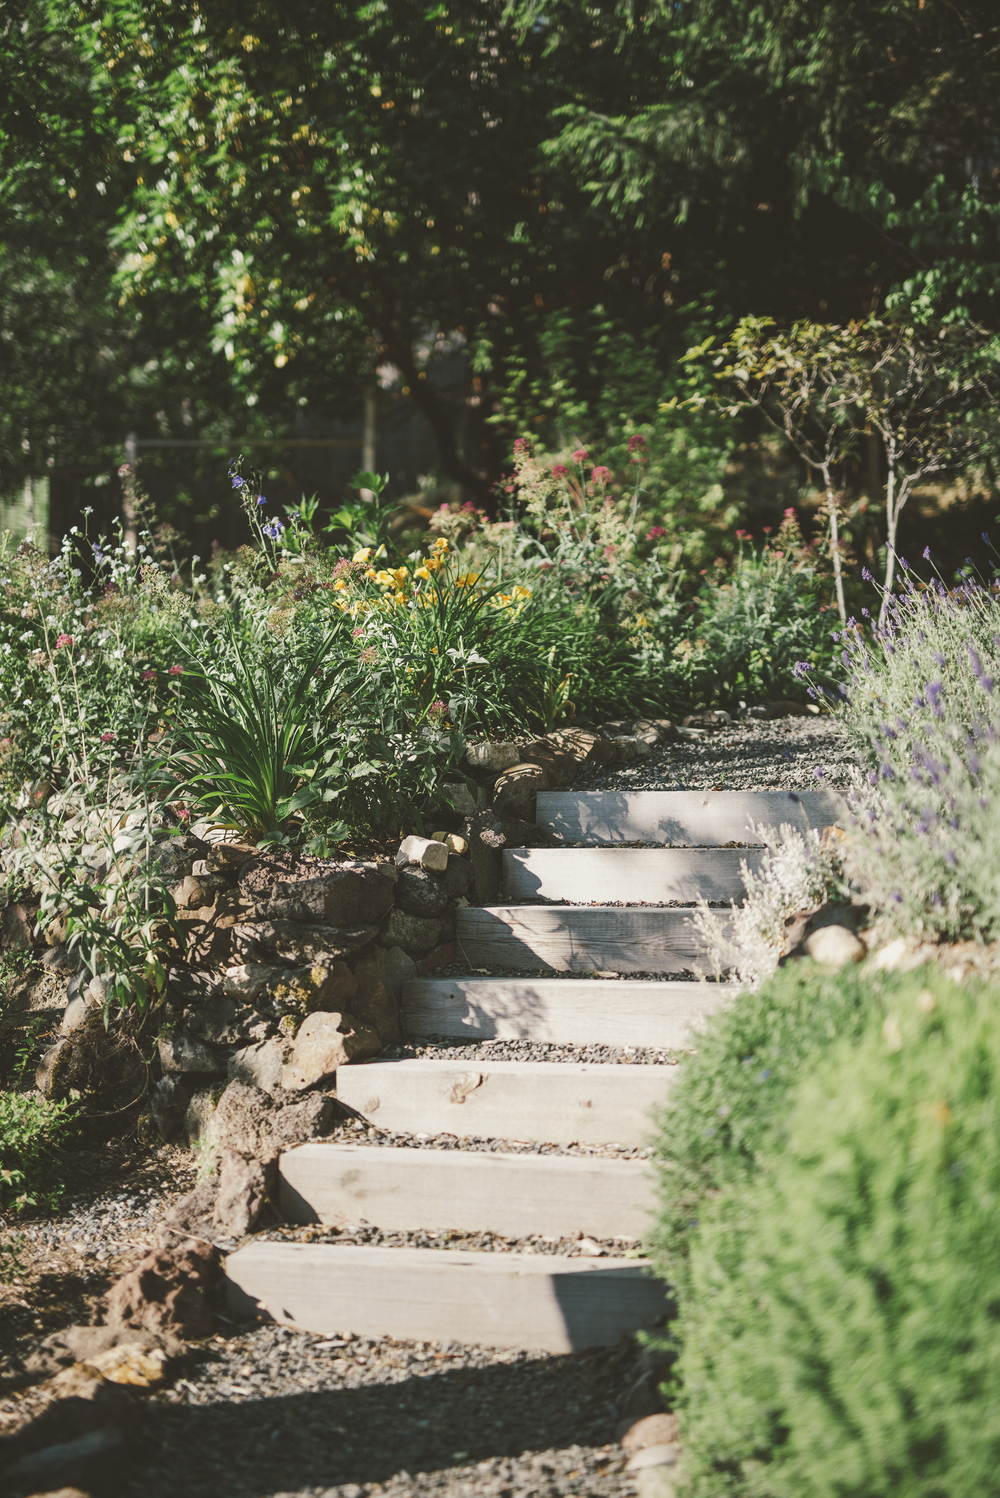 Timber Garden Steps Through Blooming Landscape of Drought-tolerant Plantings.jpg